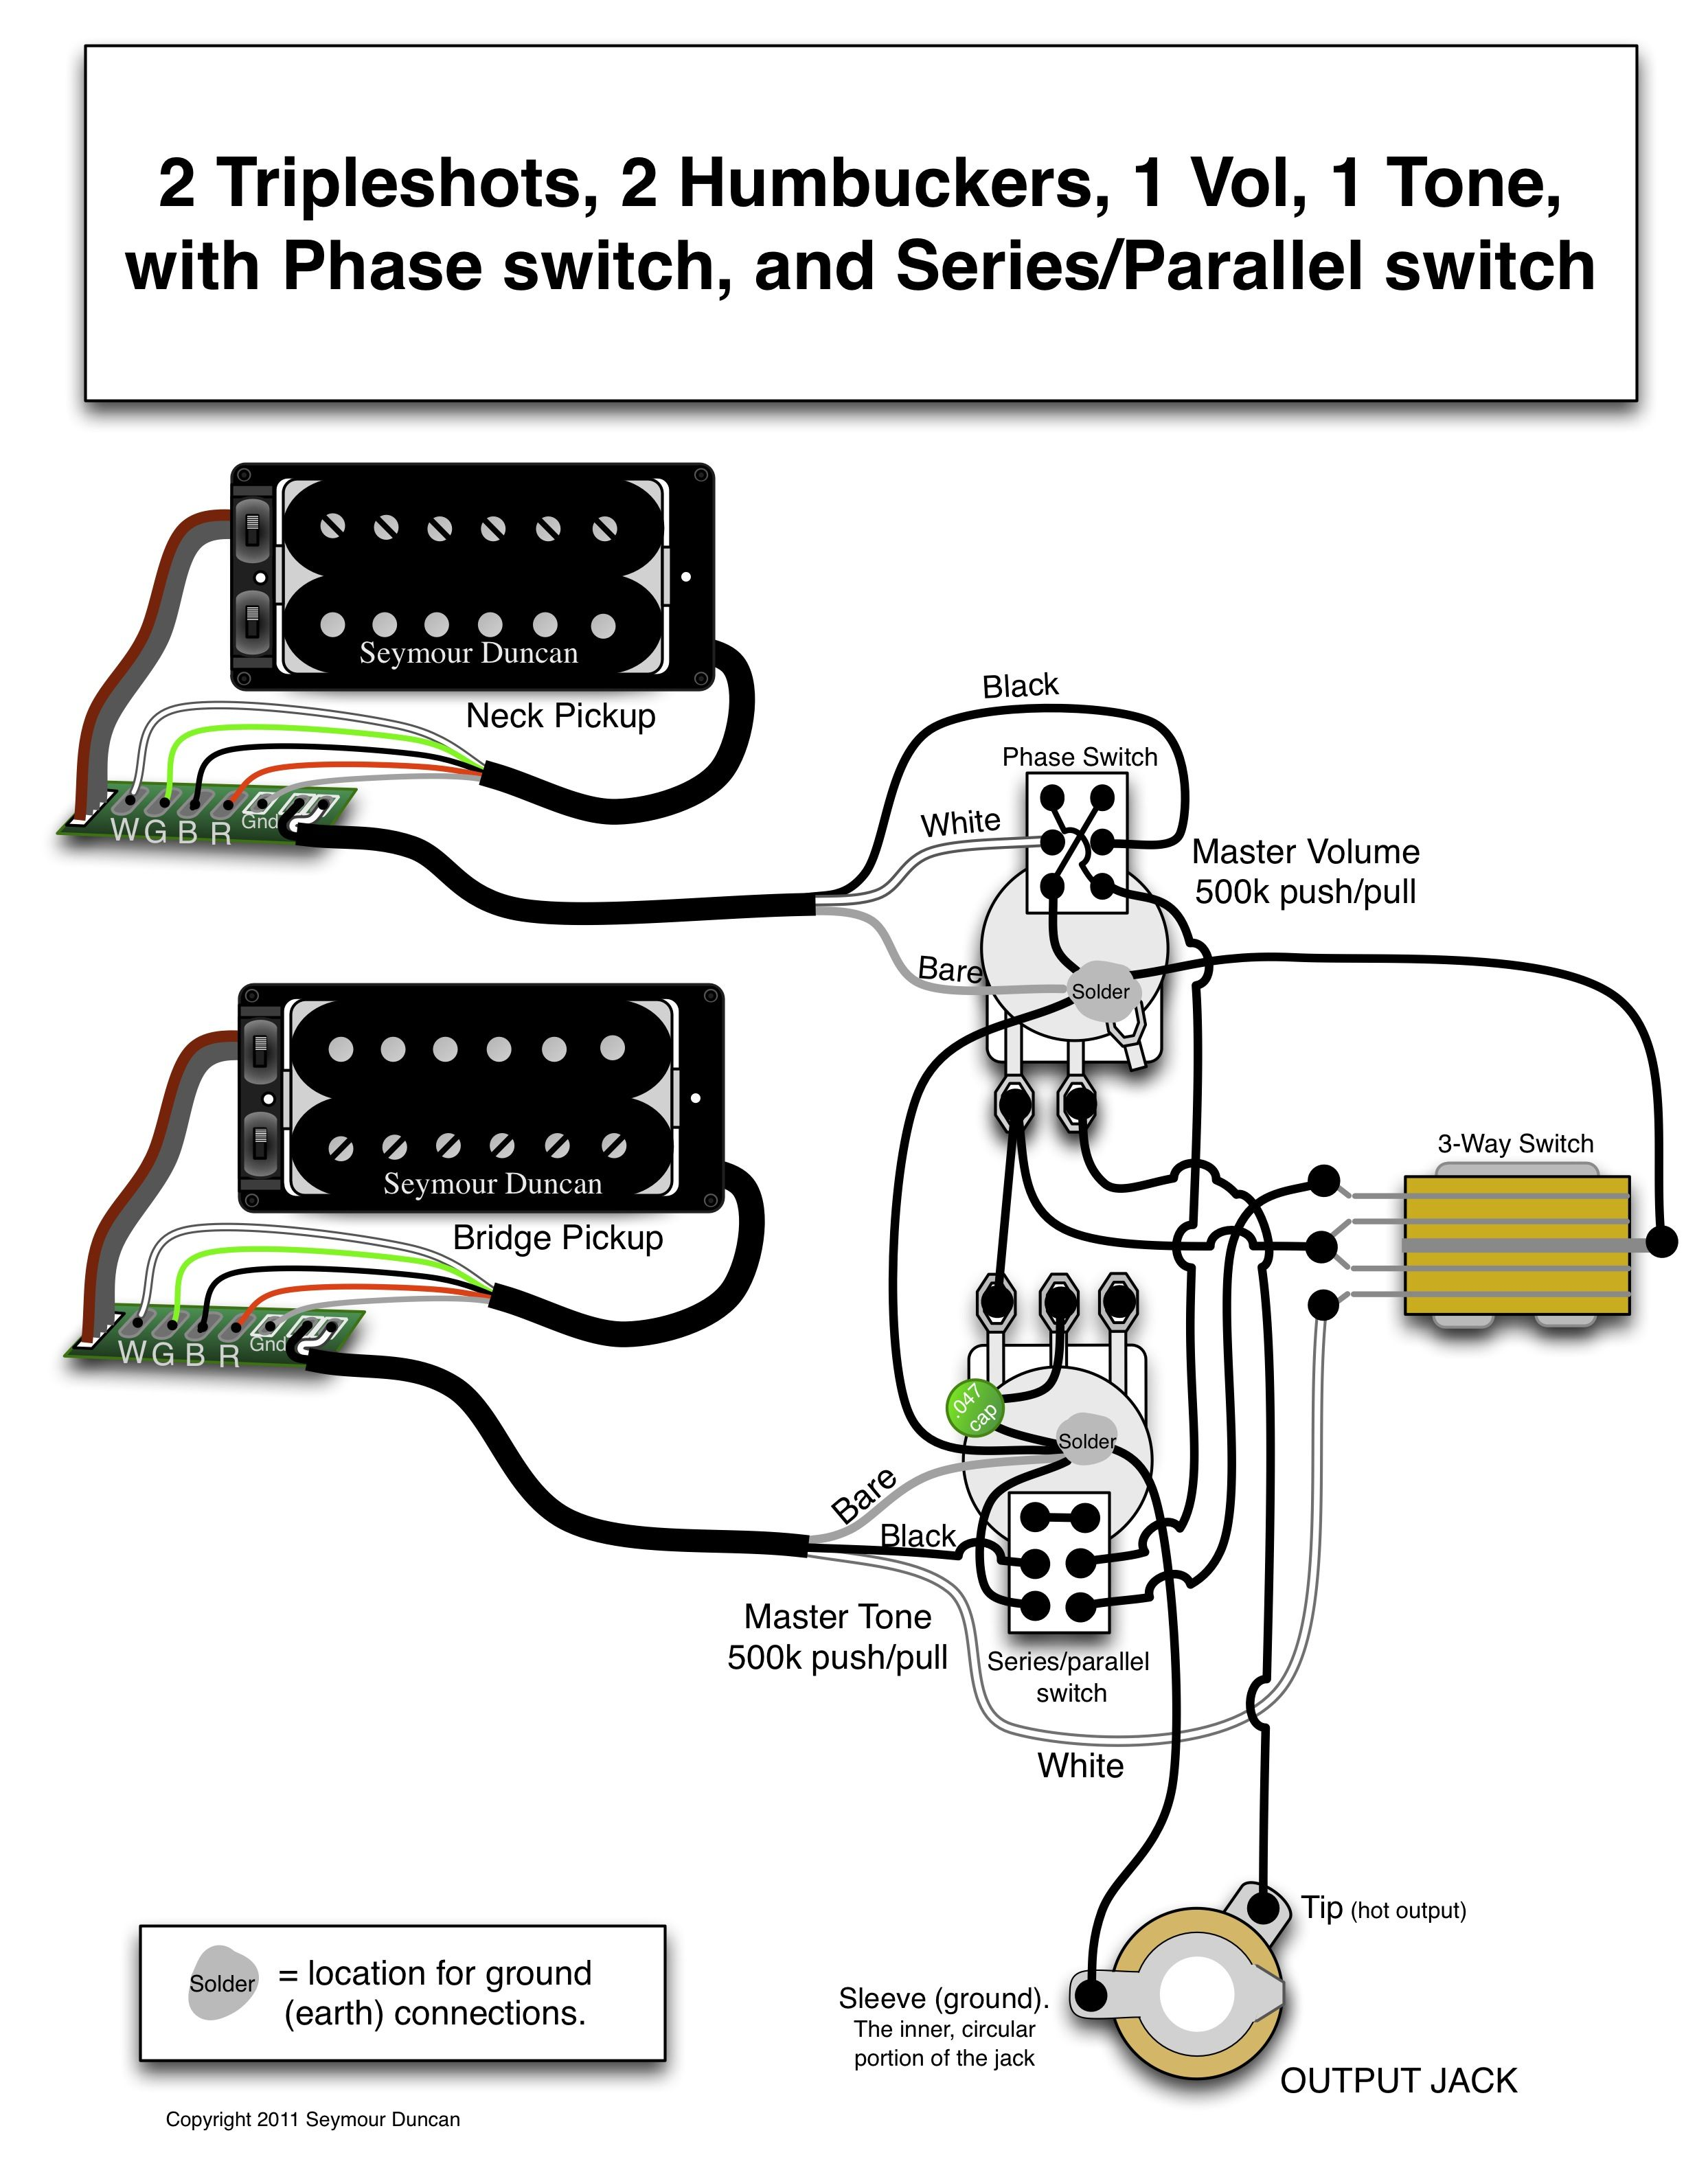 [FPER_4992]  809E Vintage Mini Humbucker Wiring Diagrams | Wiring Library | Vintage Mini Humbucker Wiring Diagrams |  | Wiring Library